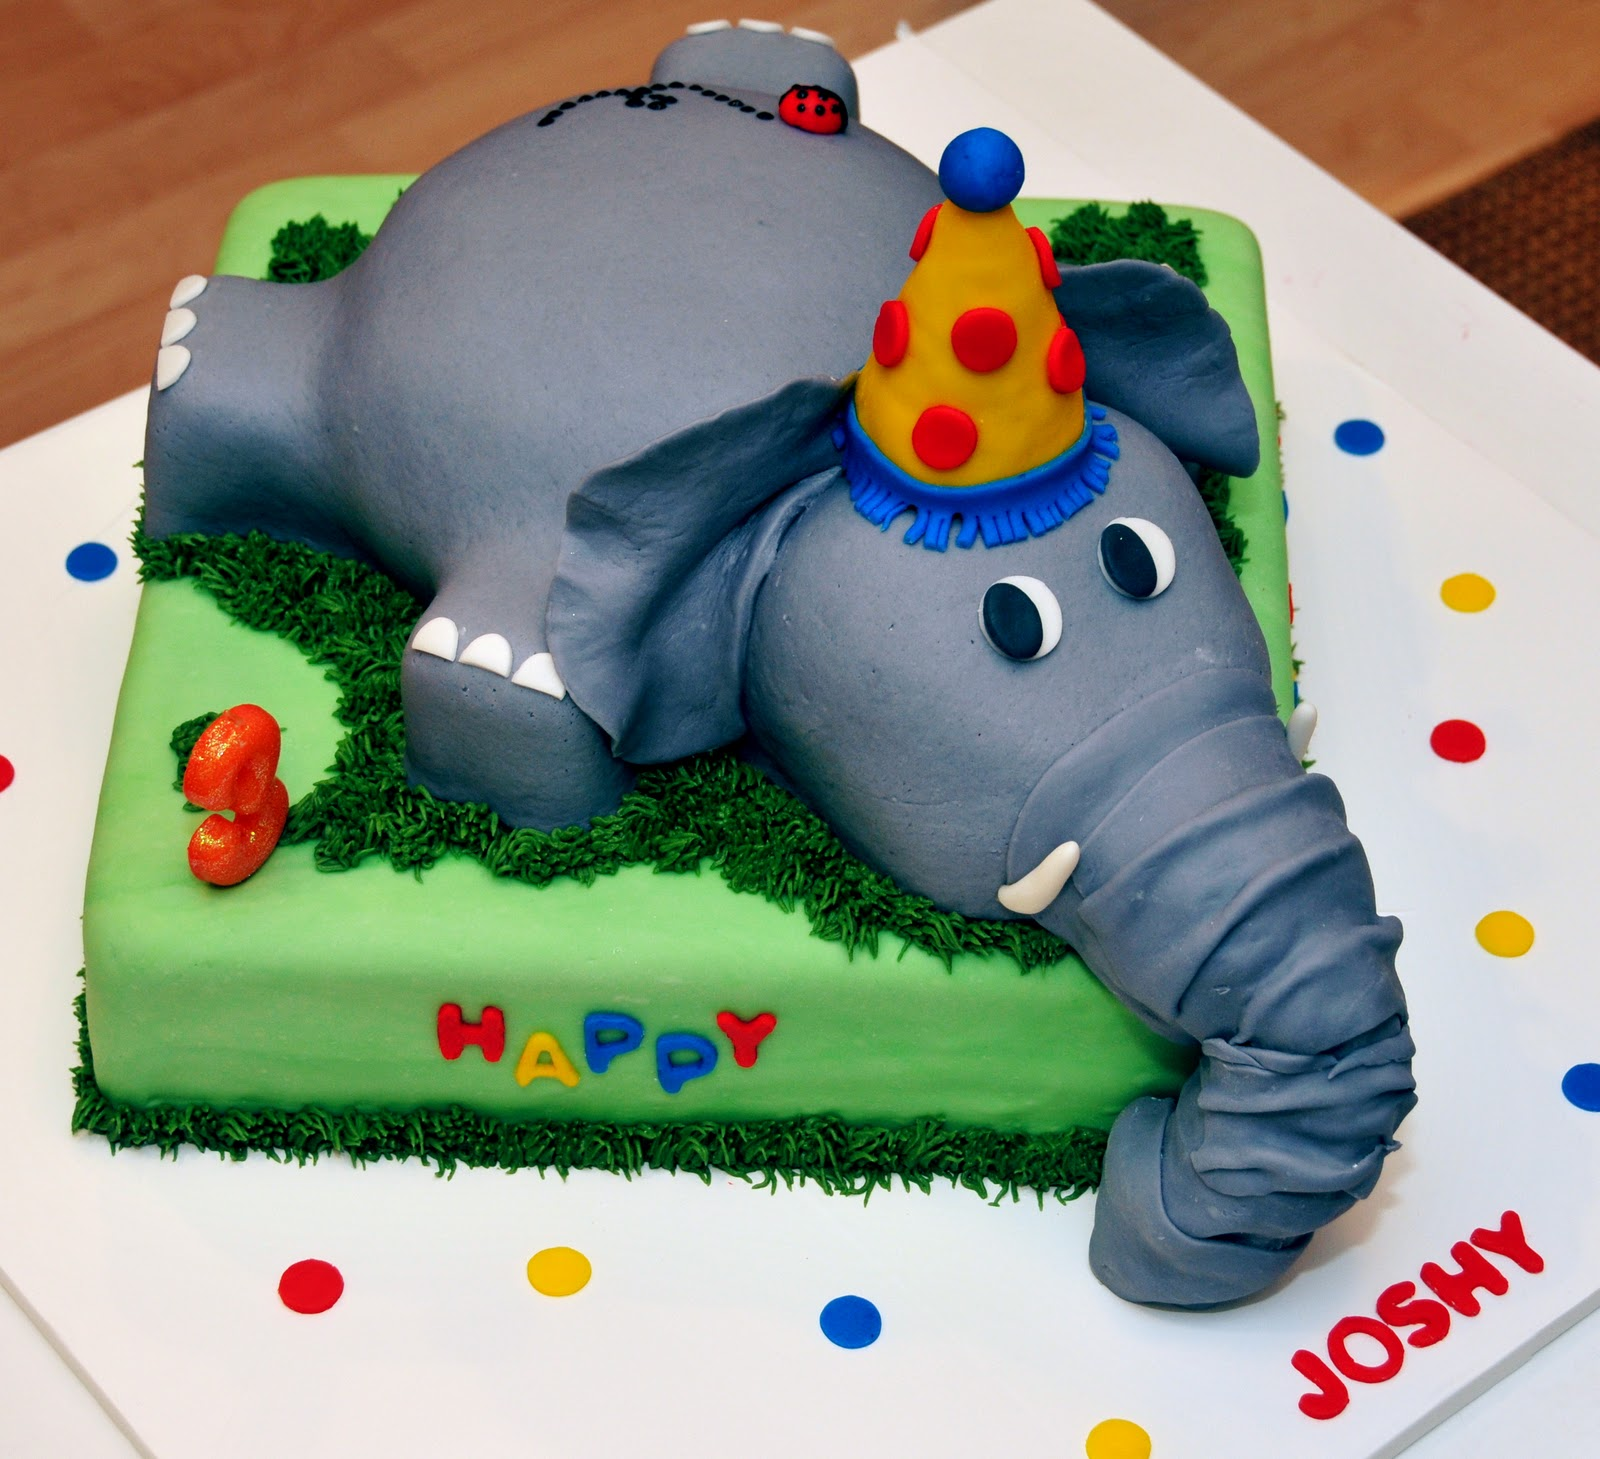 Cake Photos Of Birthday : Elephant Cakes   Decoration Ideas Little Birthday Cakes